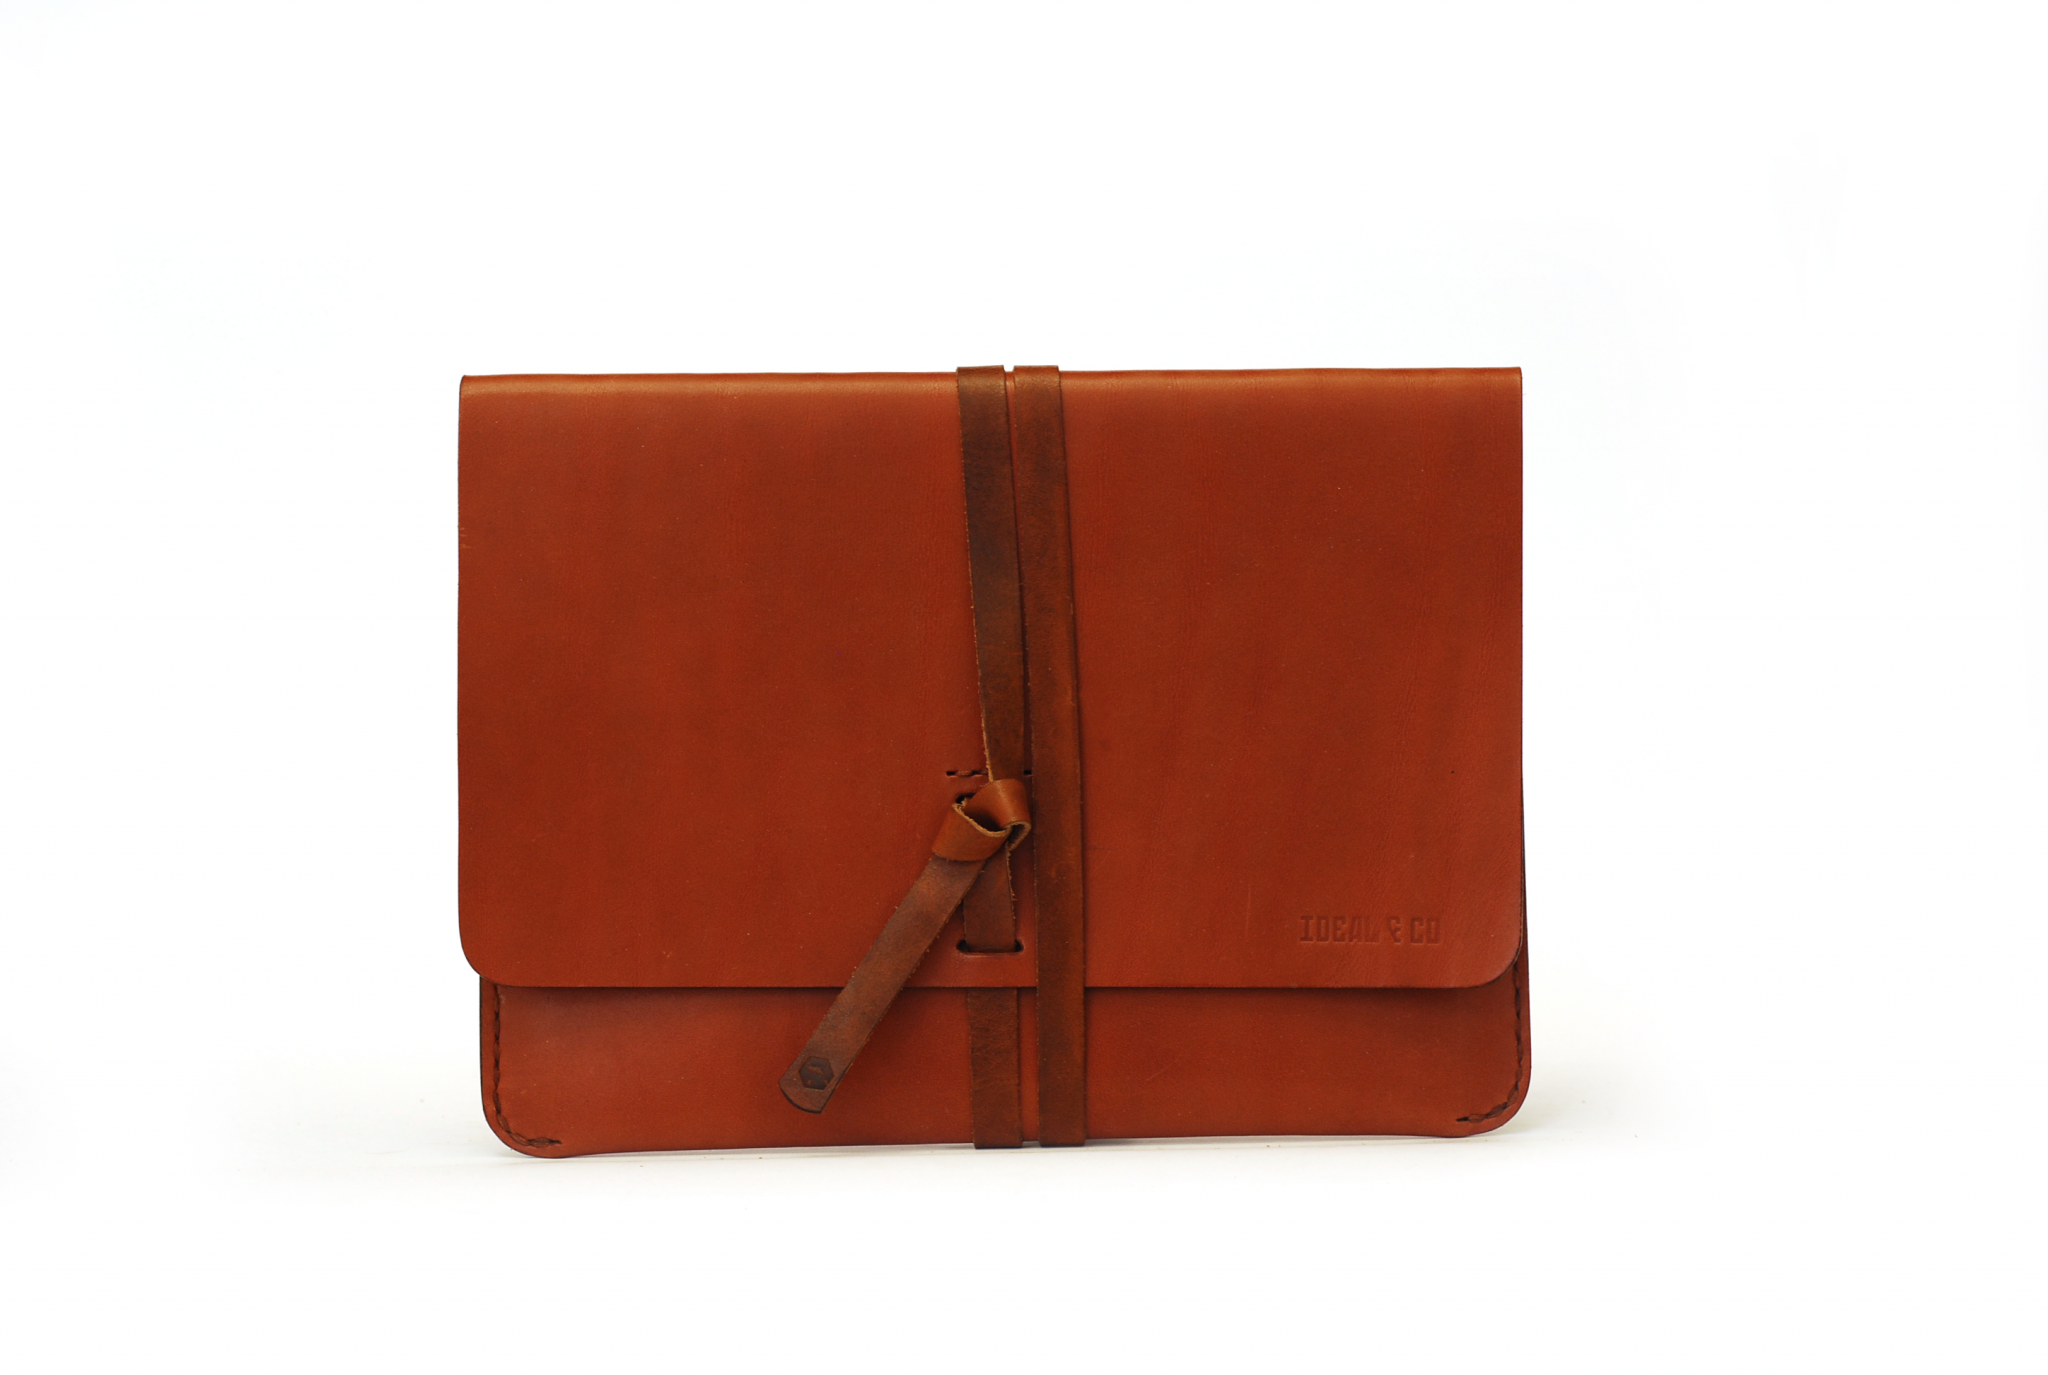 IDEAL & CO - ALVADOS TABLET CASE2